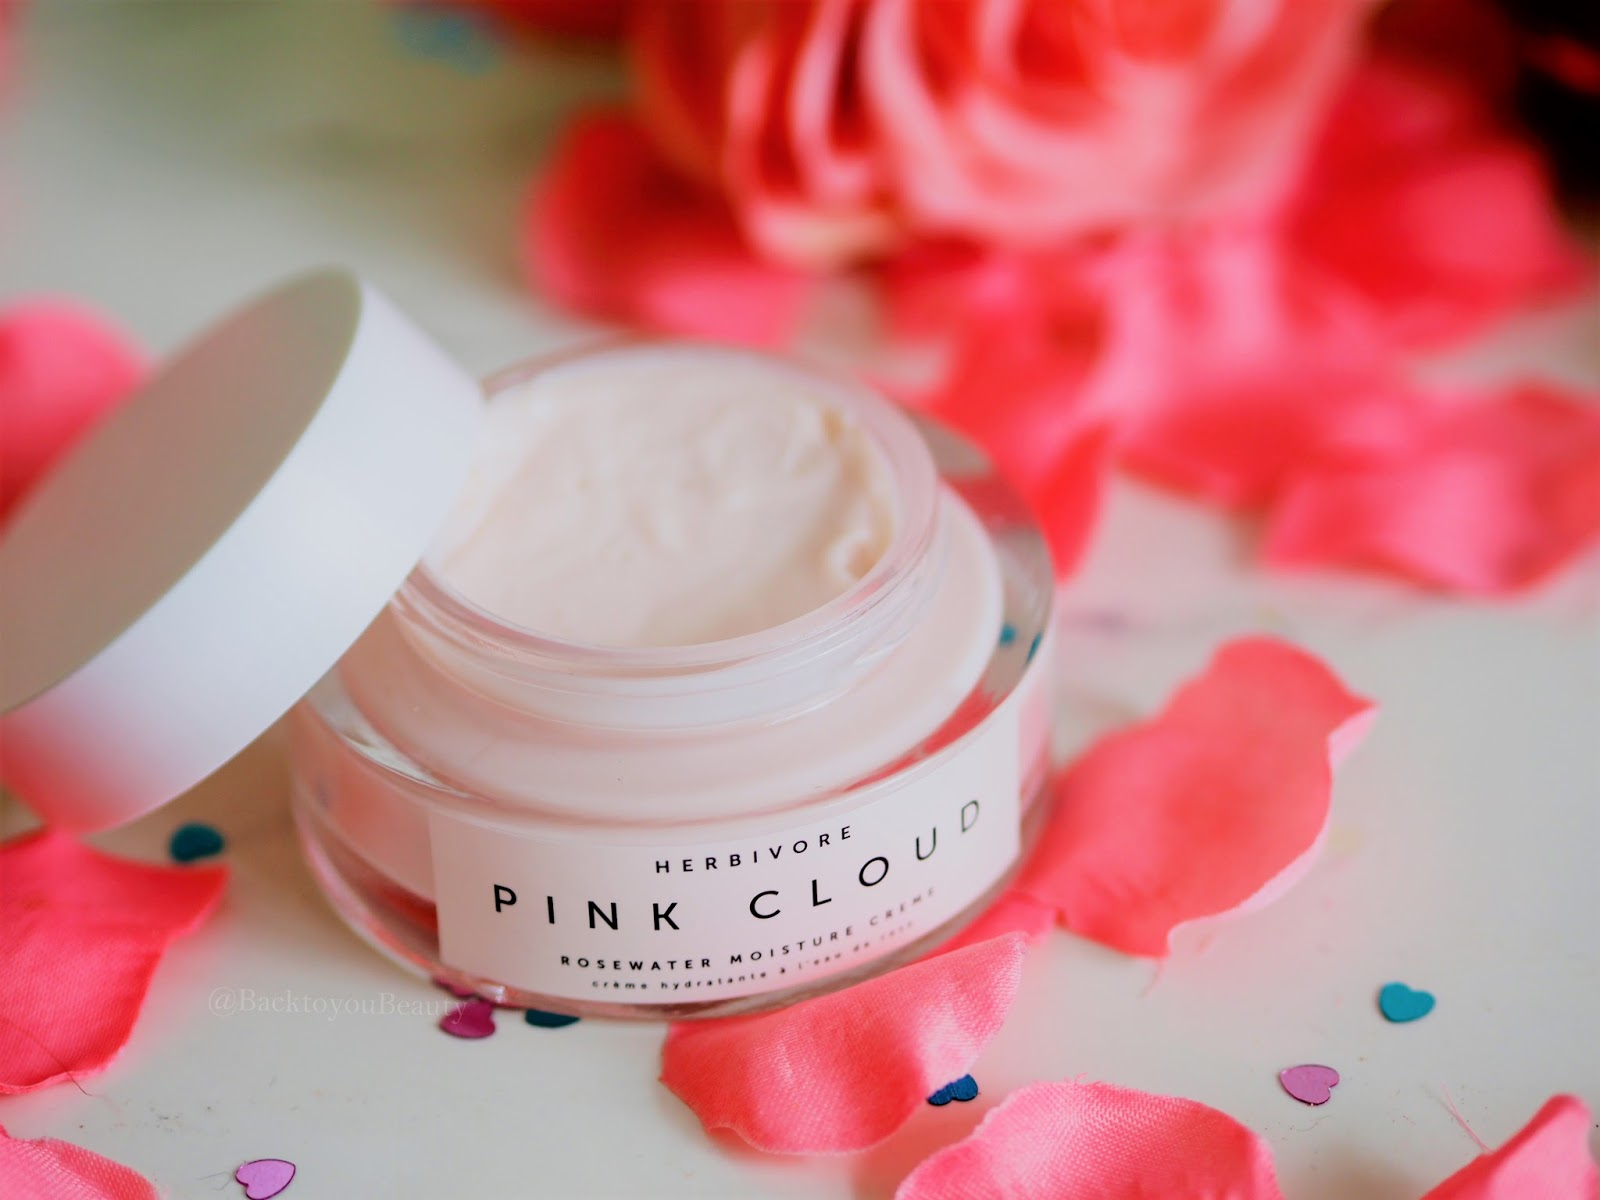 Pink Cloud Rose Water Moisture Cream